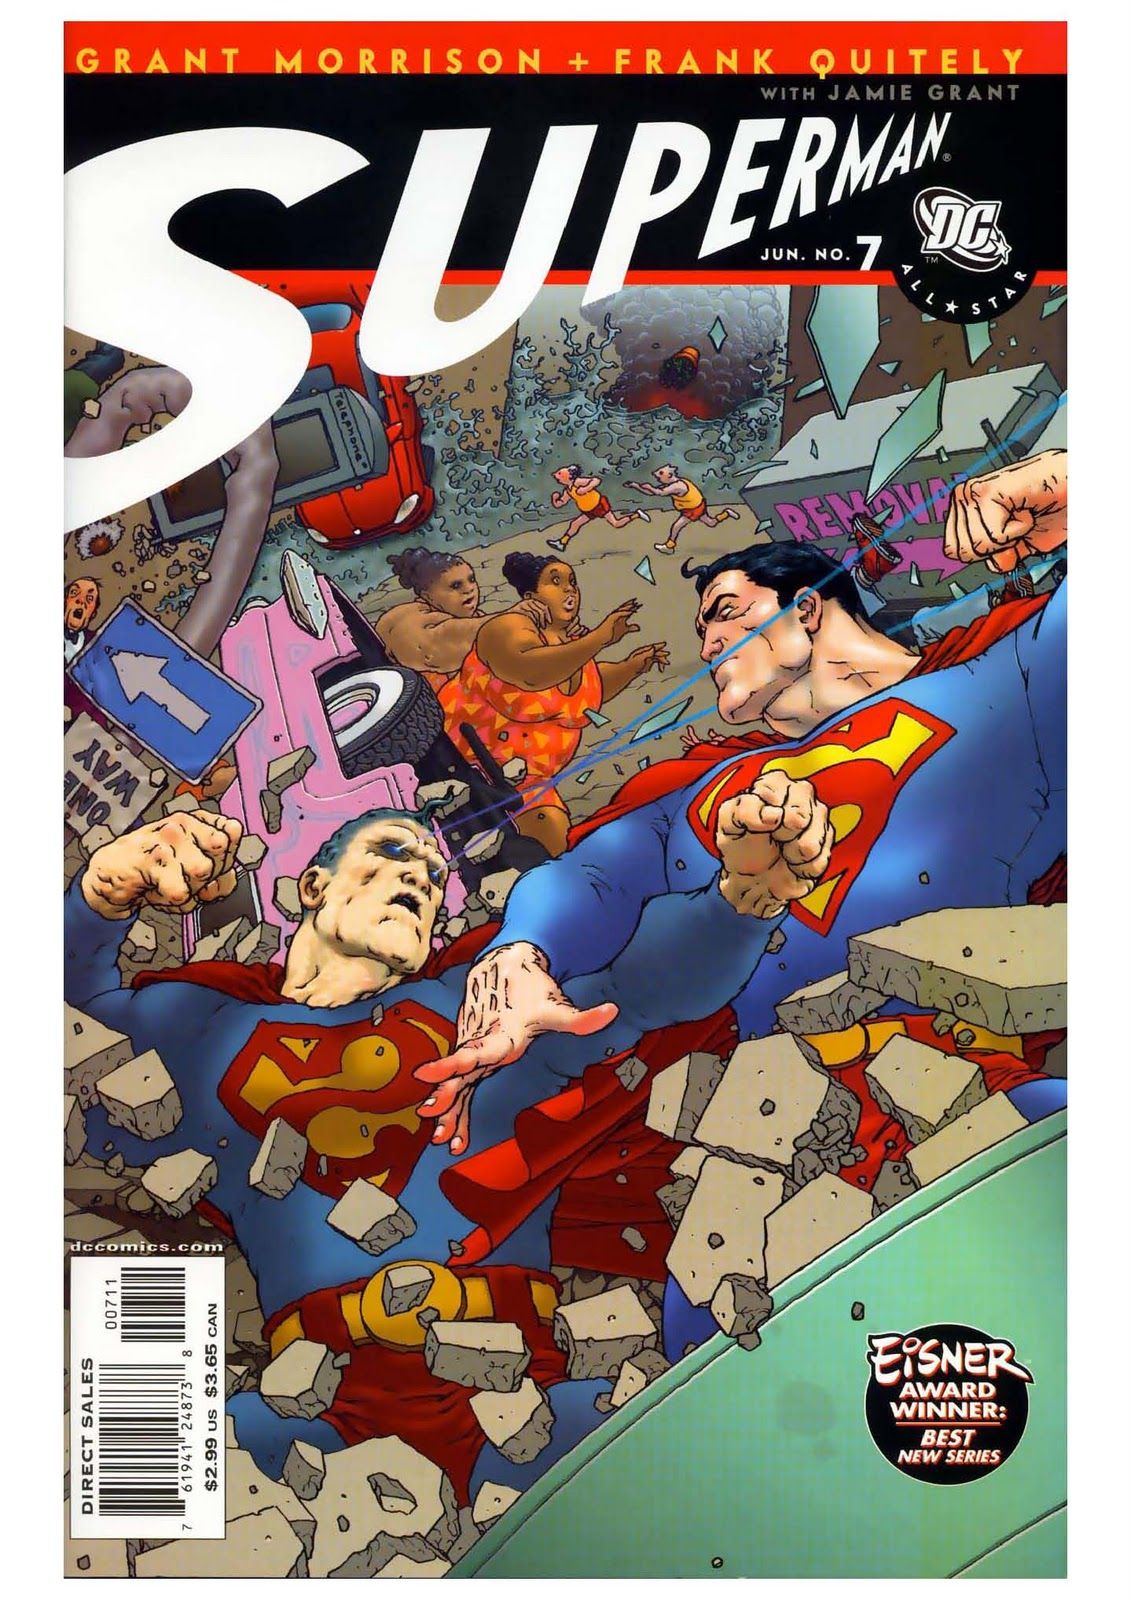 free_ebook_gratis_superman-07-all-star.jpg